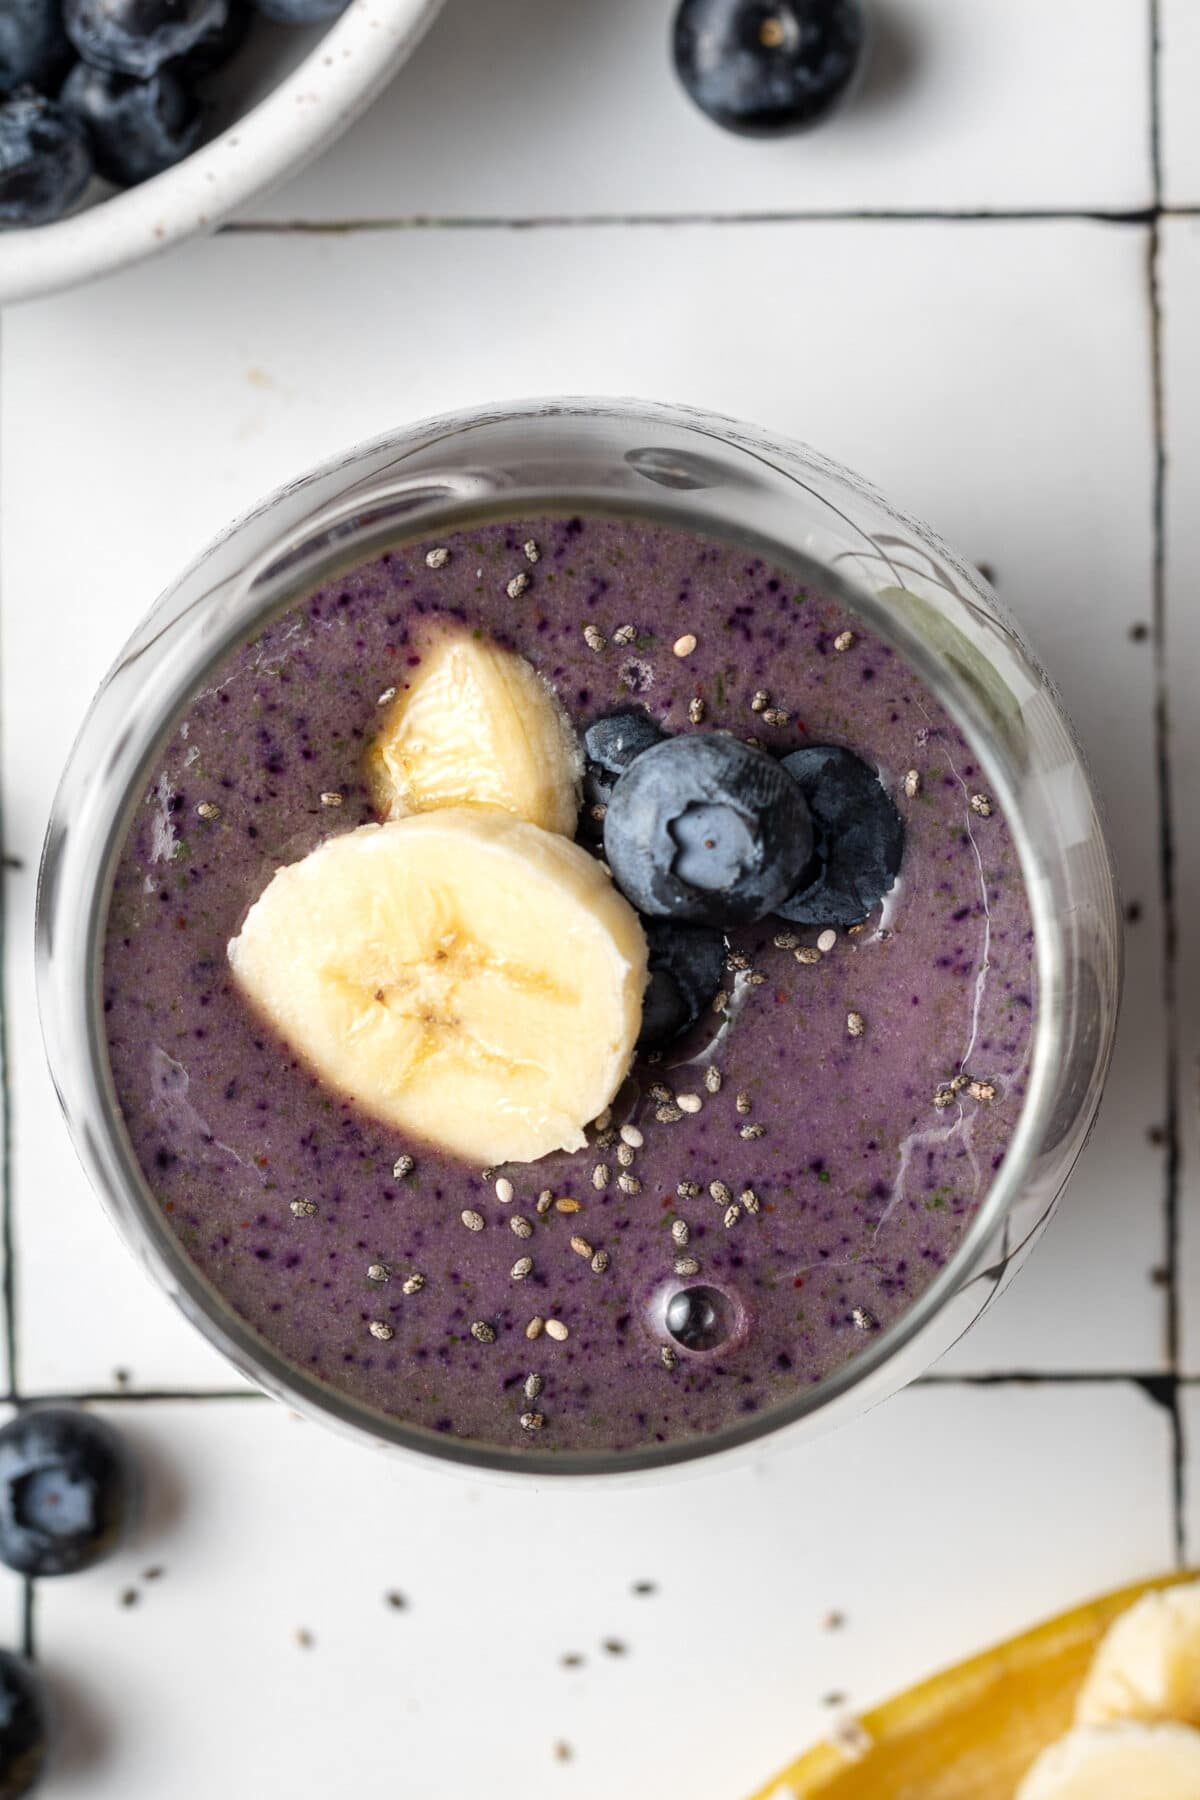 blueberry banana spinach smoothie in a glass with bananas and blueberries and spinach leaves scattered around and chia seeds on top